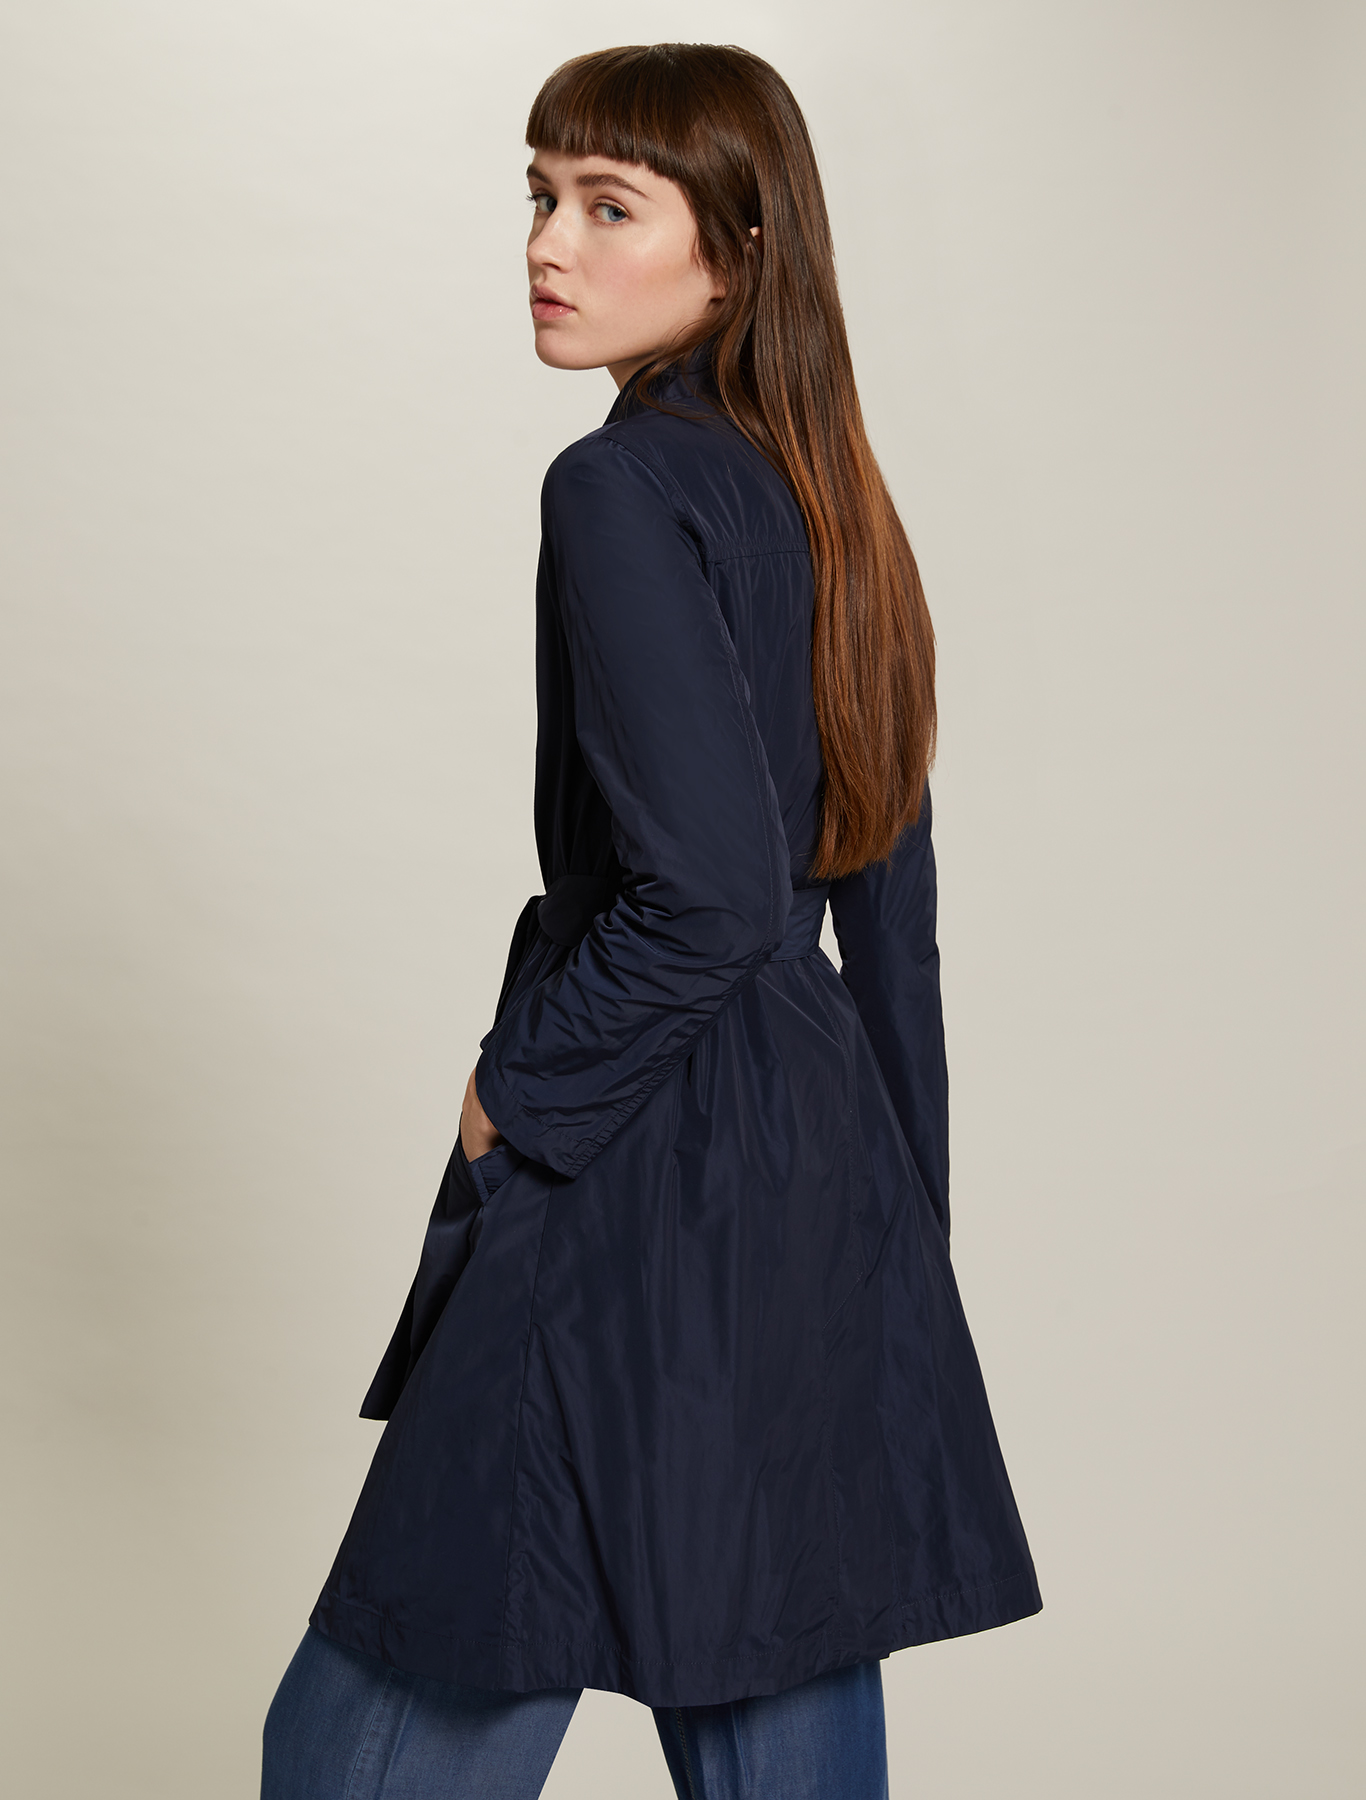 Double-breasted trench coat with belt - midnight blue - pennyblack